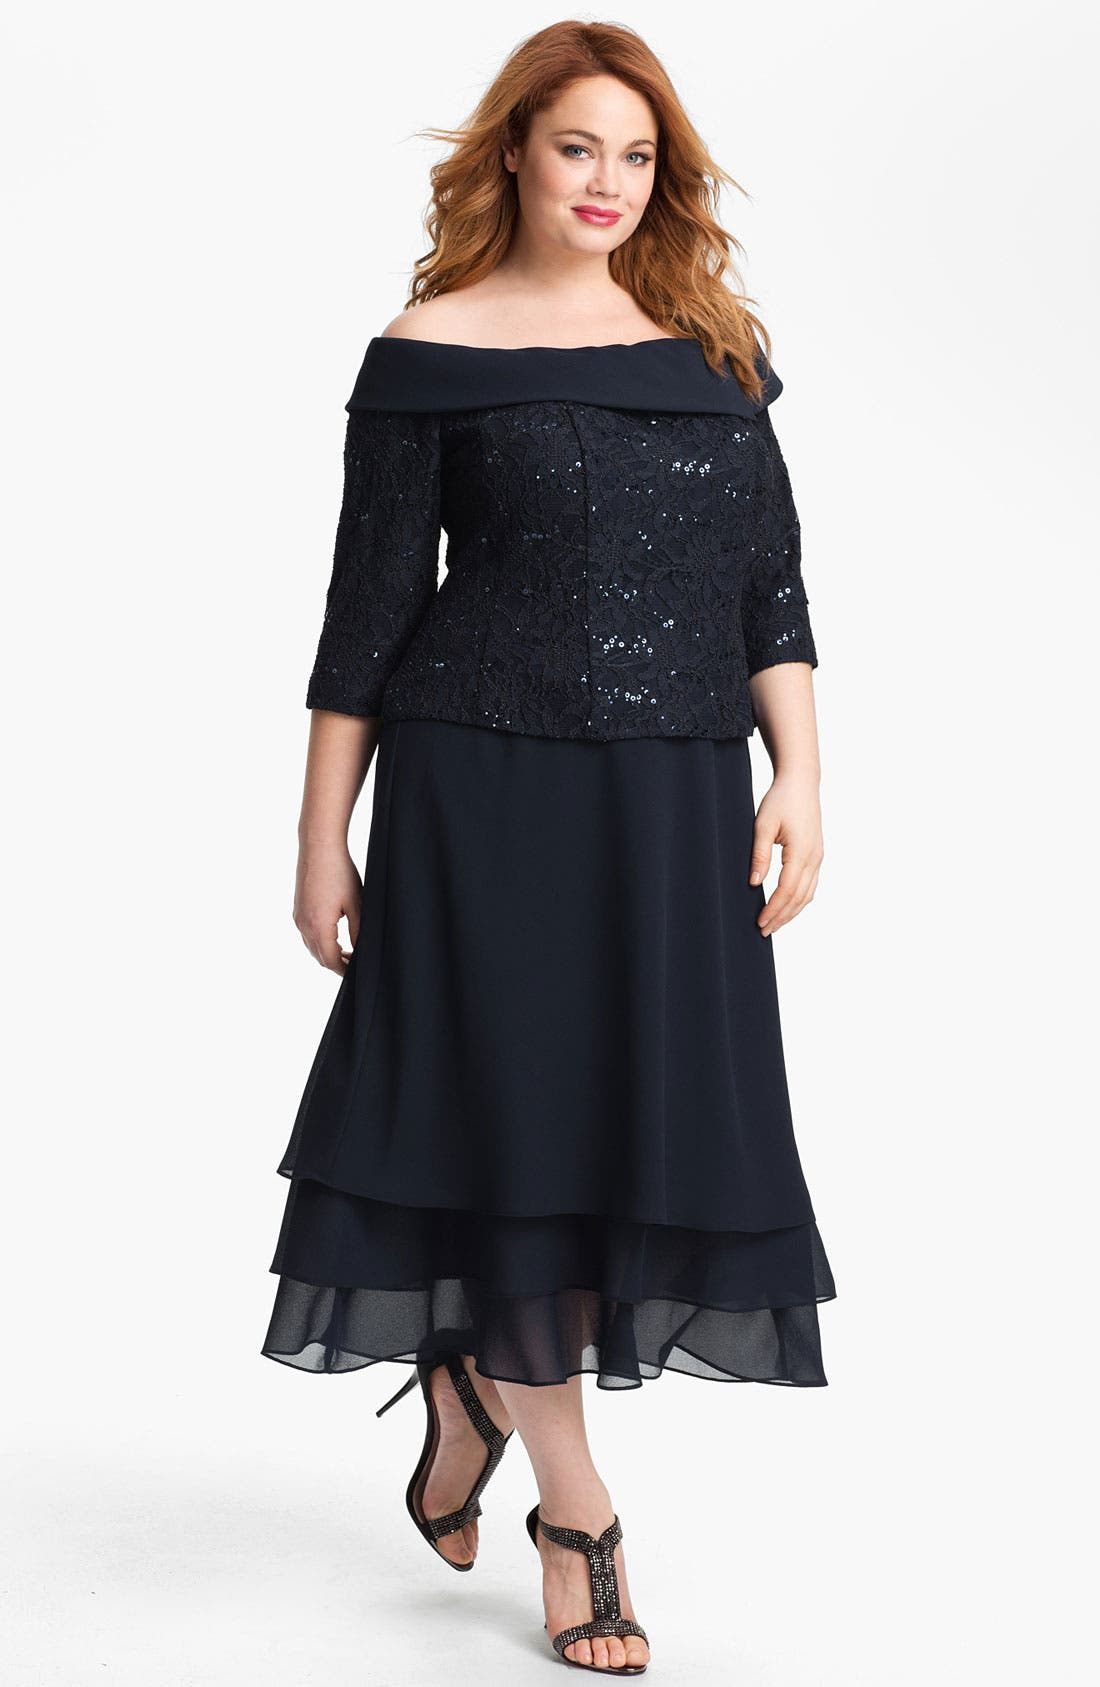 Main Image - Alex Evenings Sequin Lace Top & Tiered Skirt (Plus)